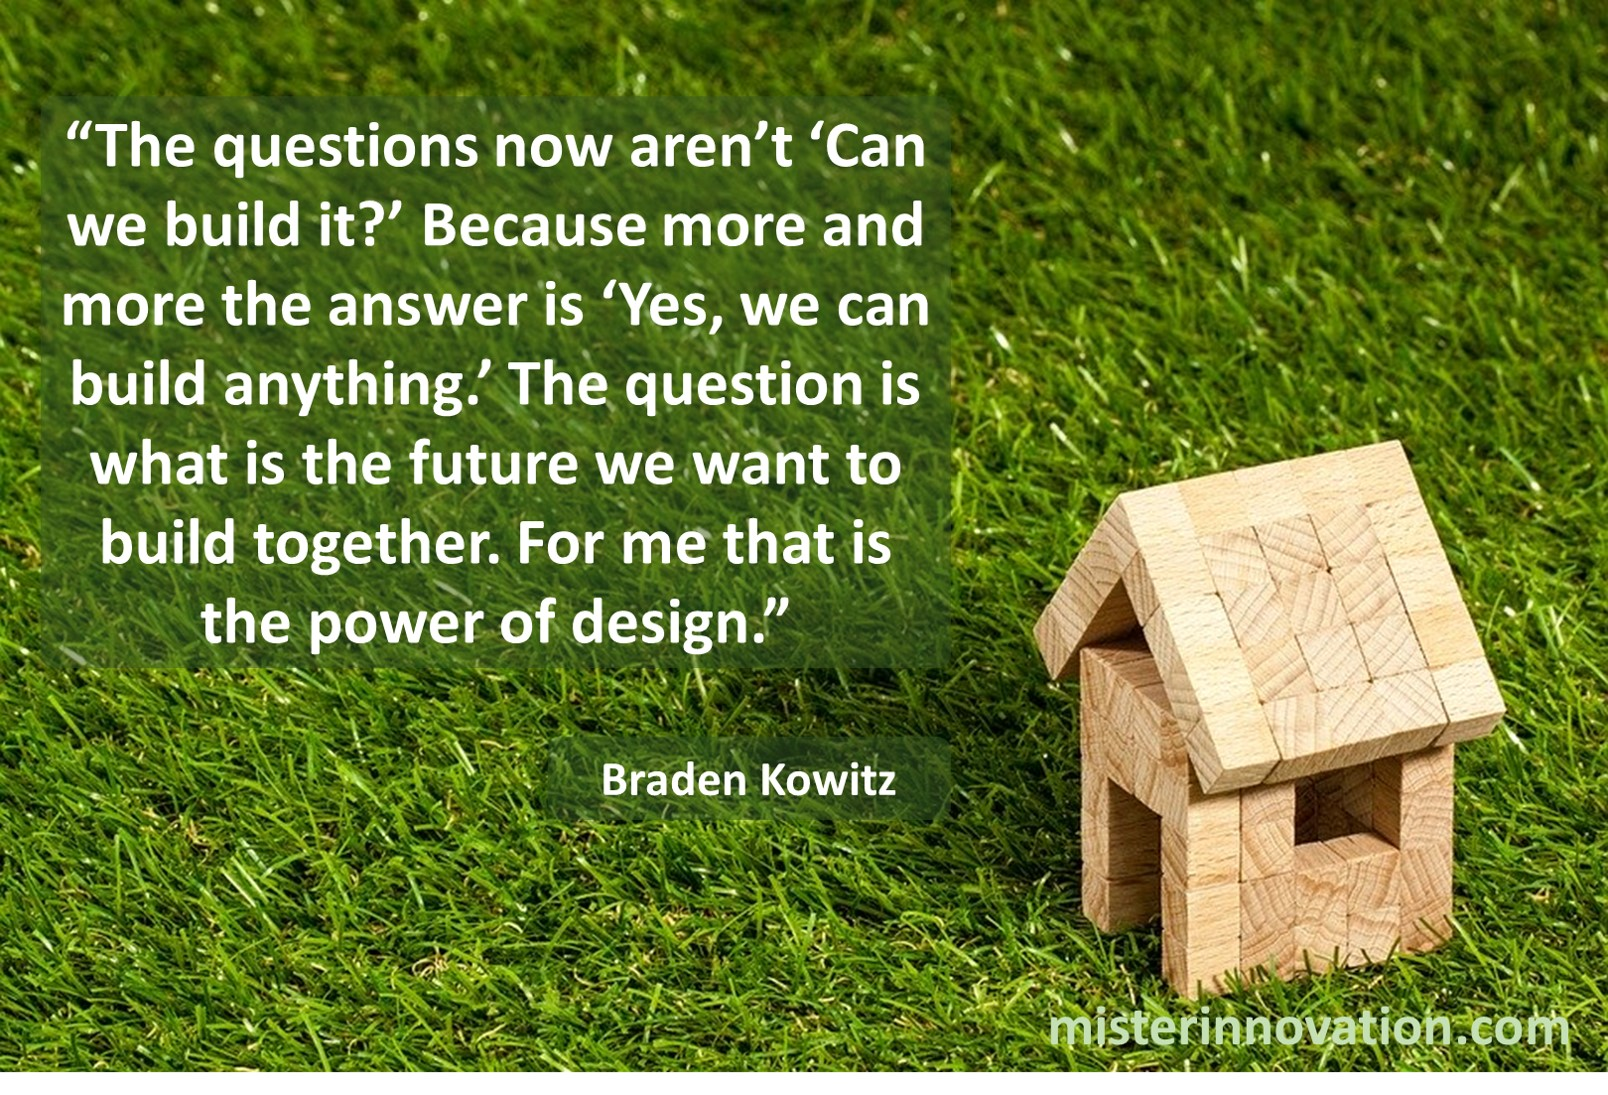 Braden Kowitz quote about building the future of design together